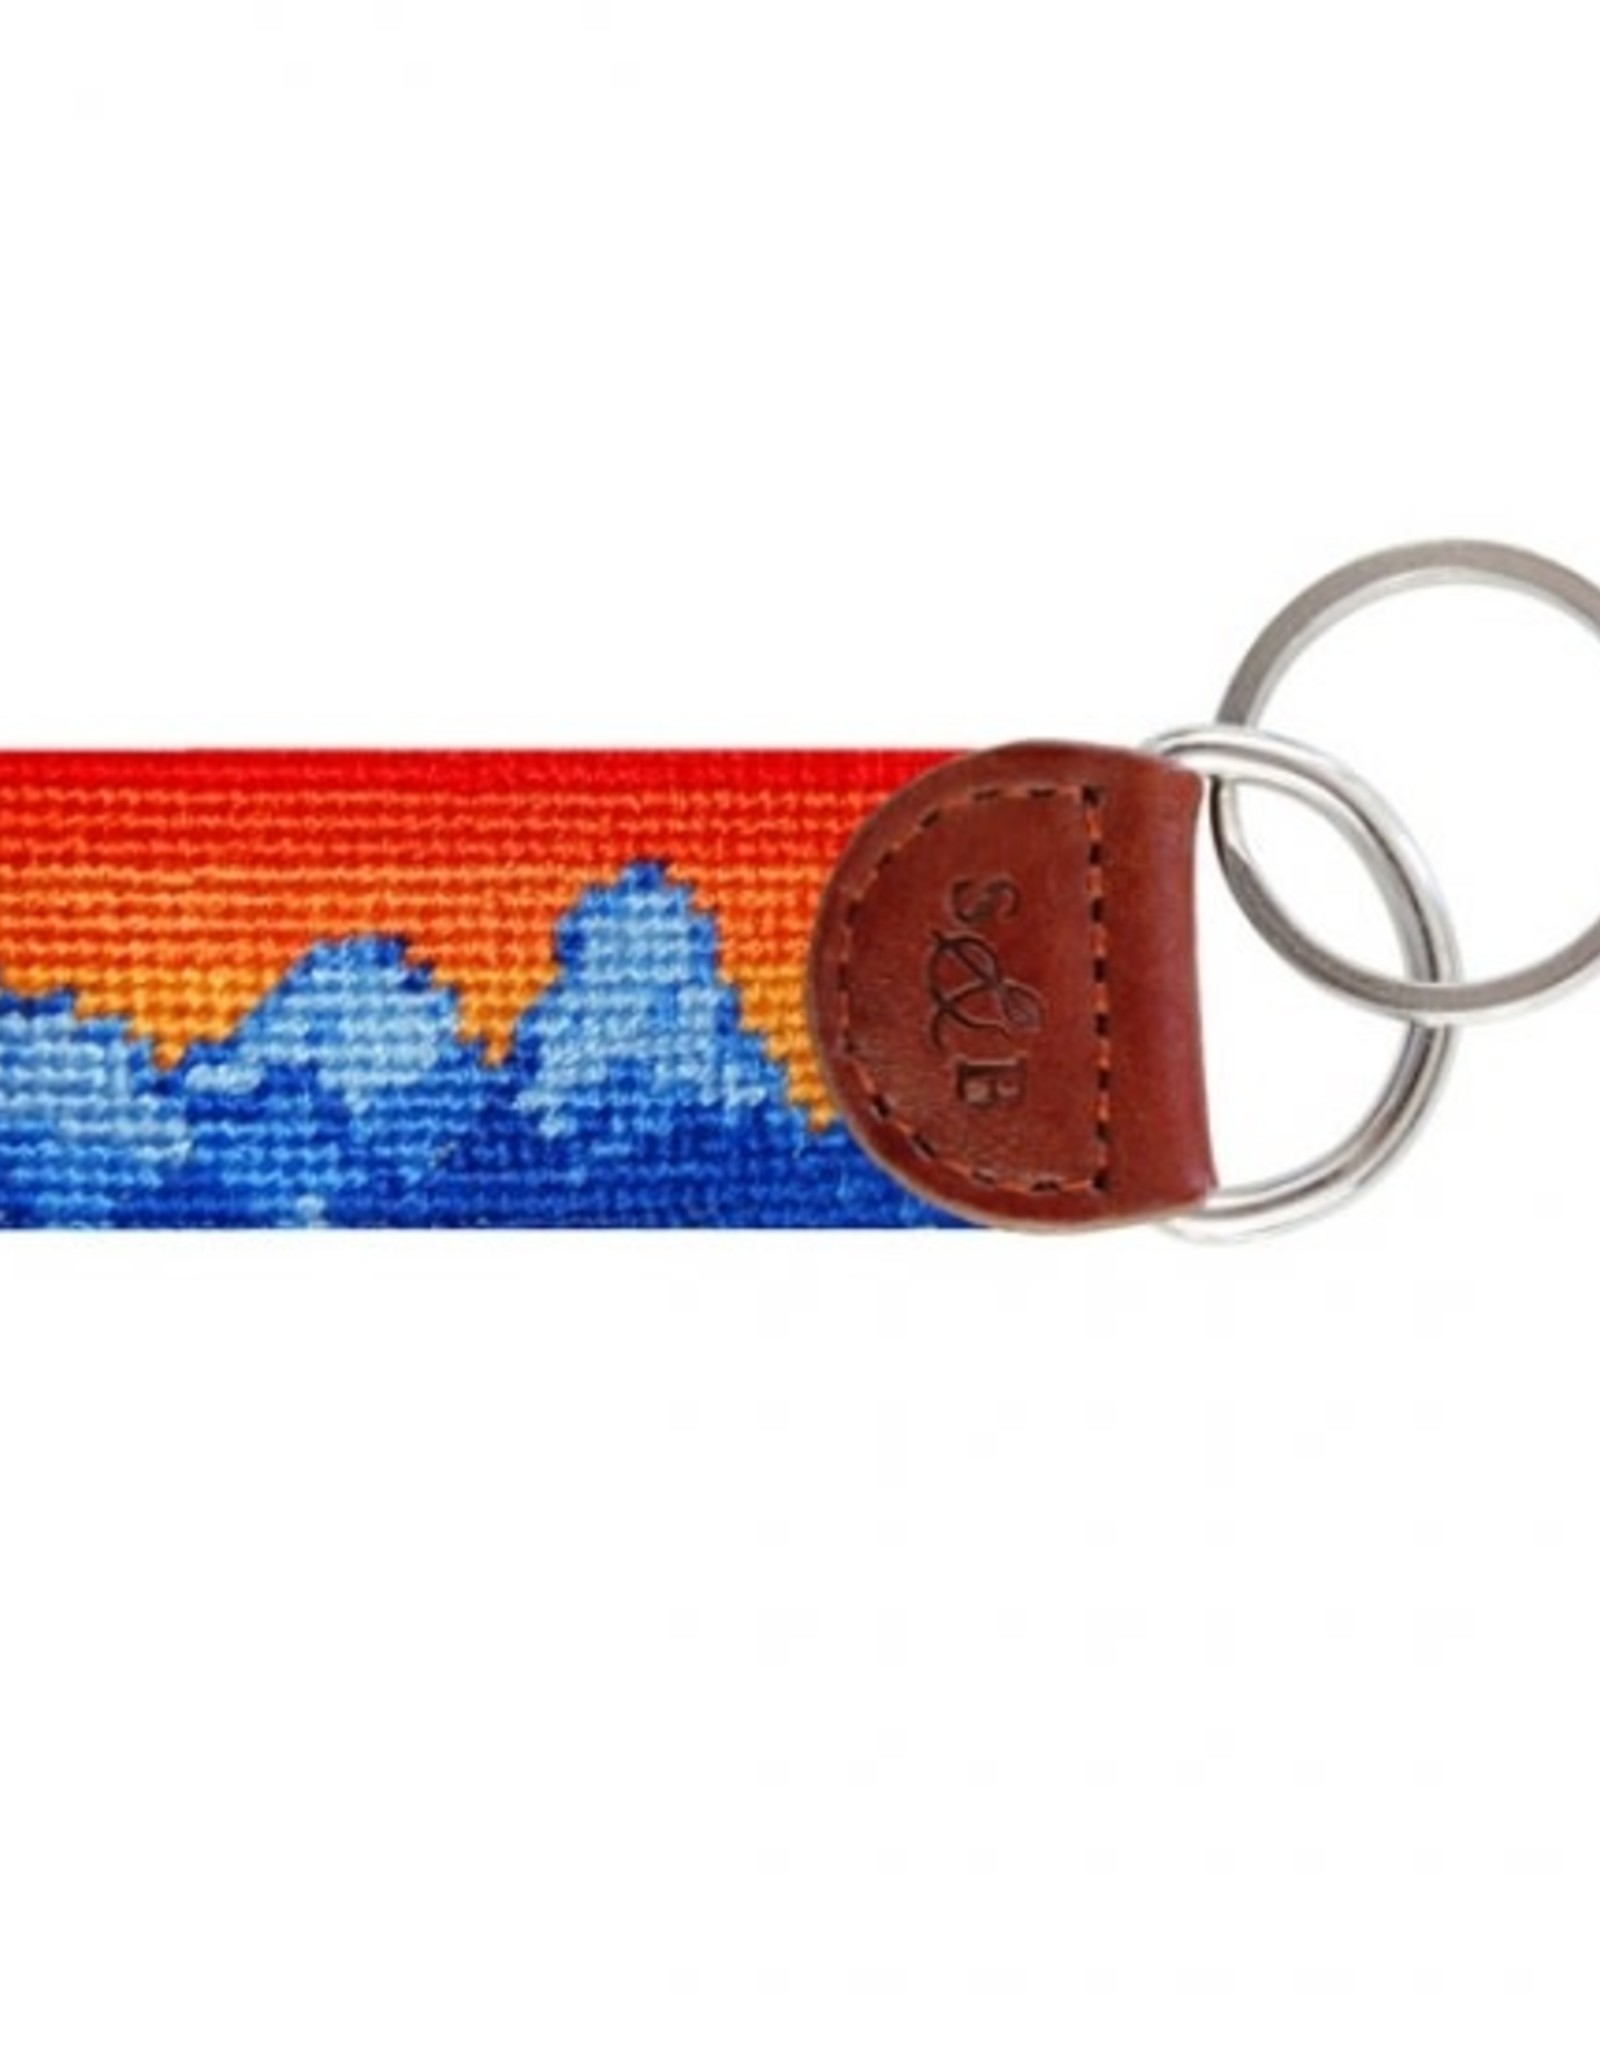 Smathers & Branson Mountain Sunset Needlepoint Key Fob